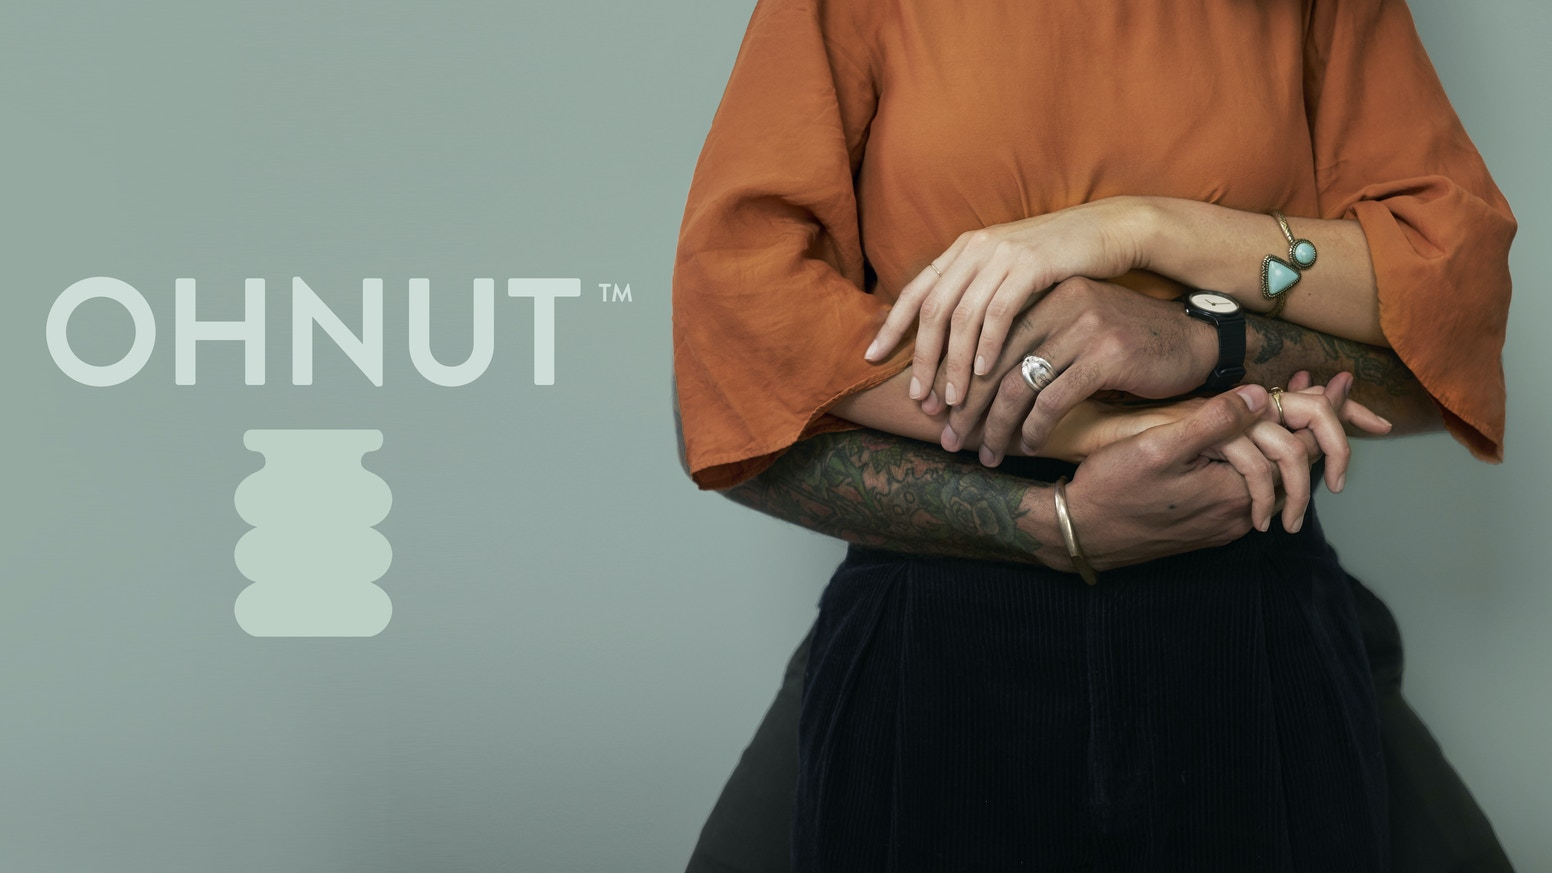 Ohnut is the first intimate wearable designed to be stackable, allowing you to customize how deep penetration goes. Set it, forget it, and play.